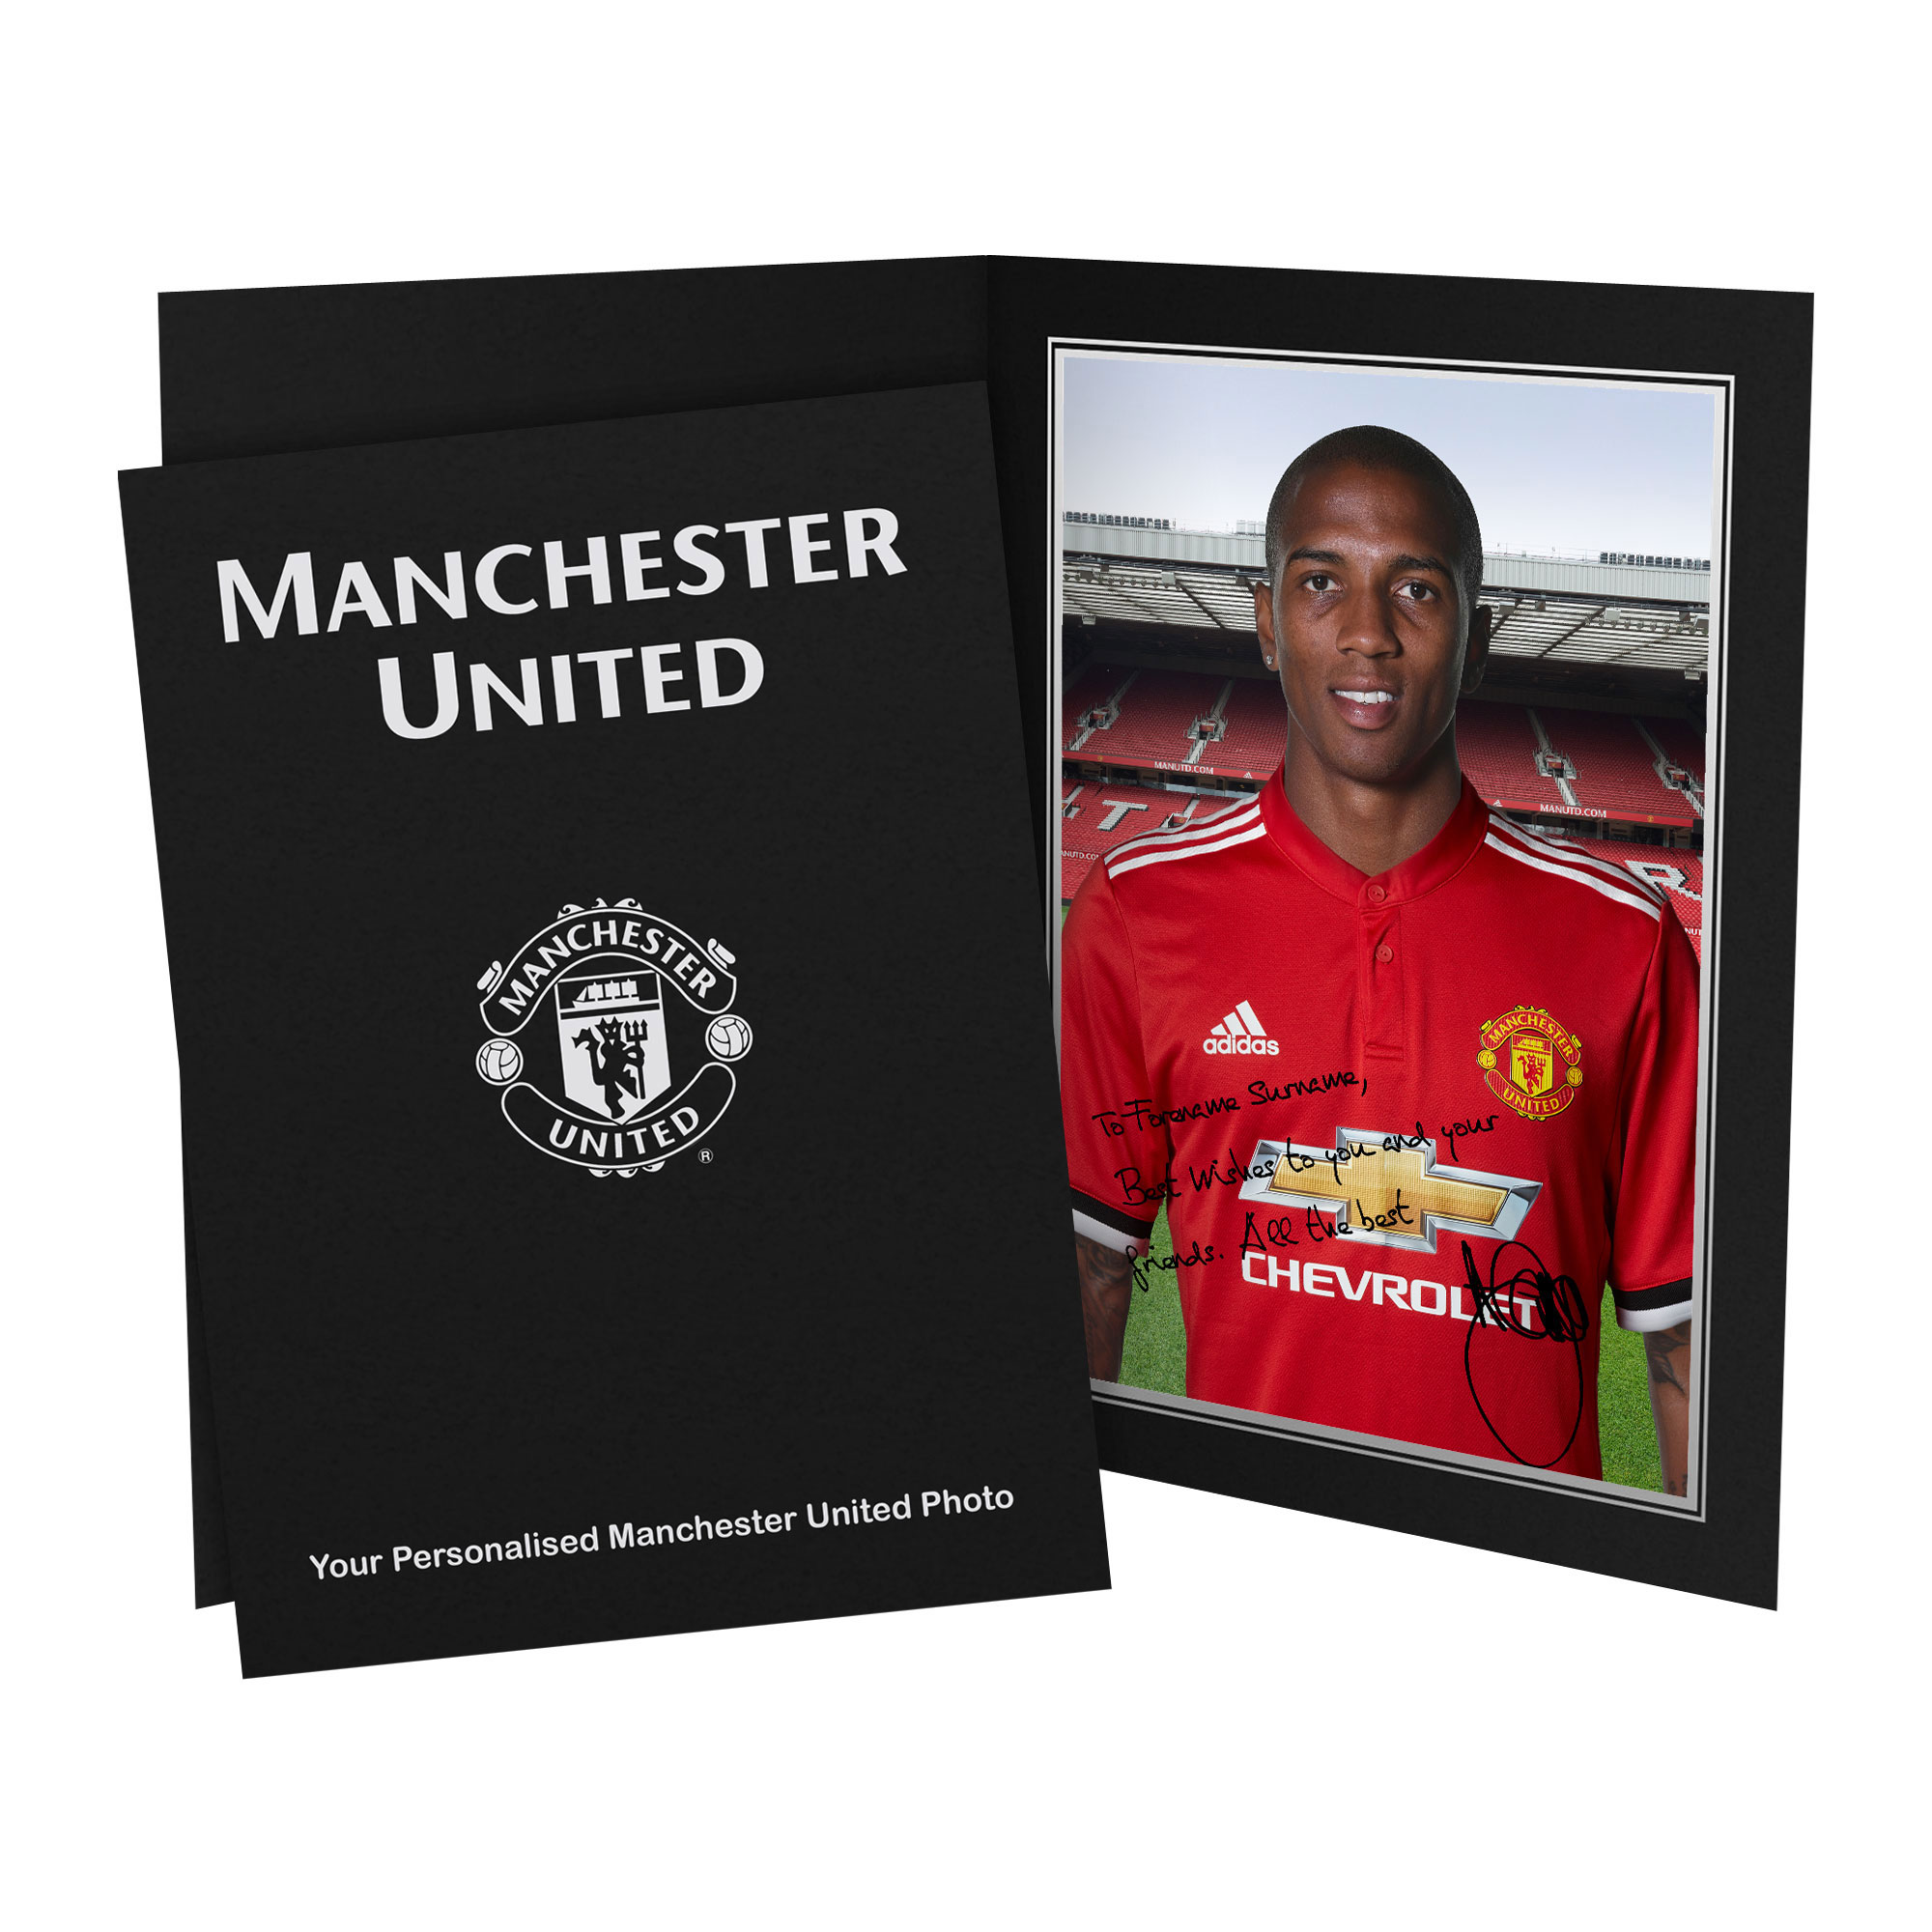 Manchester United Personalised Signature Photo In Presentation Folder - A Young